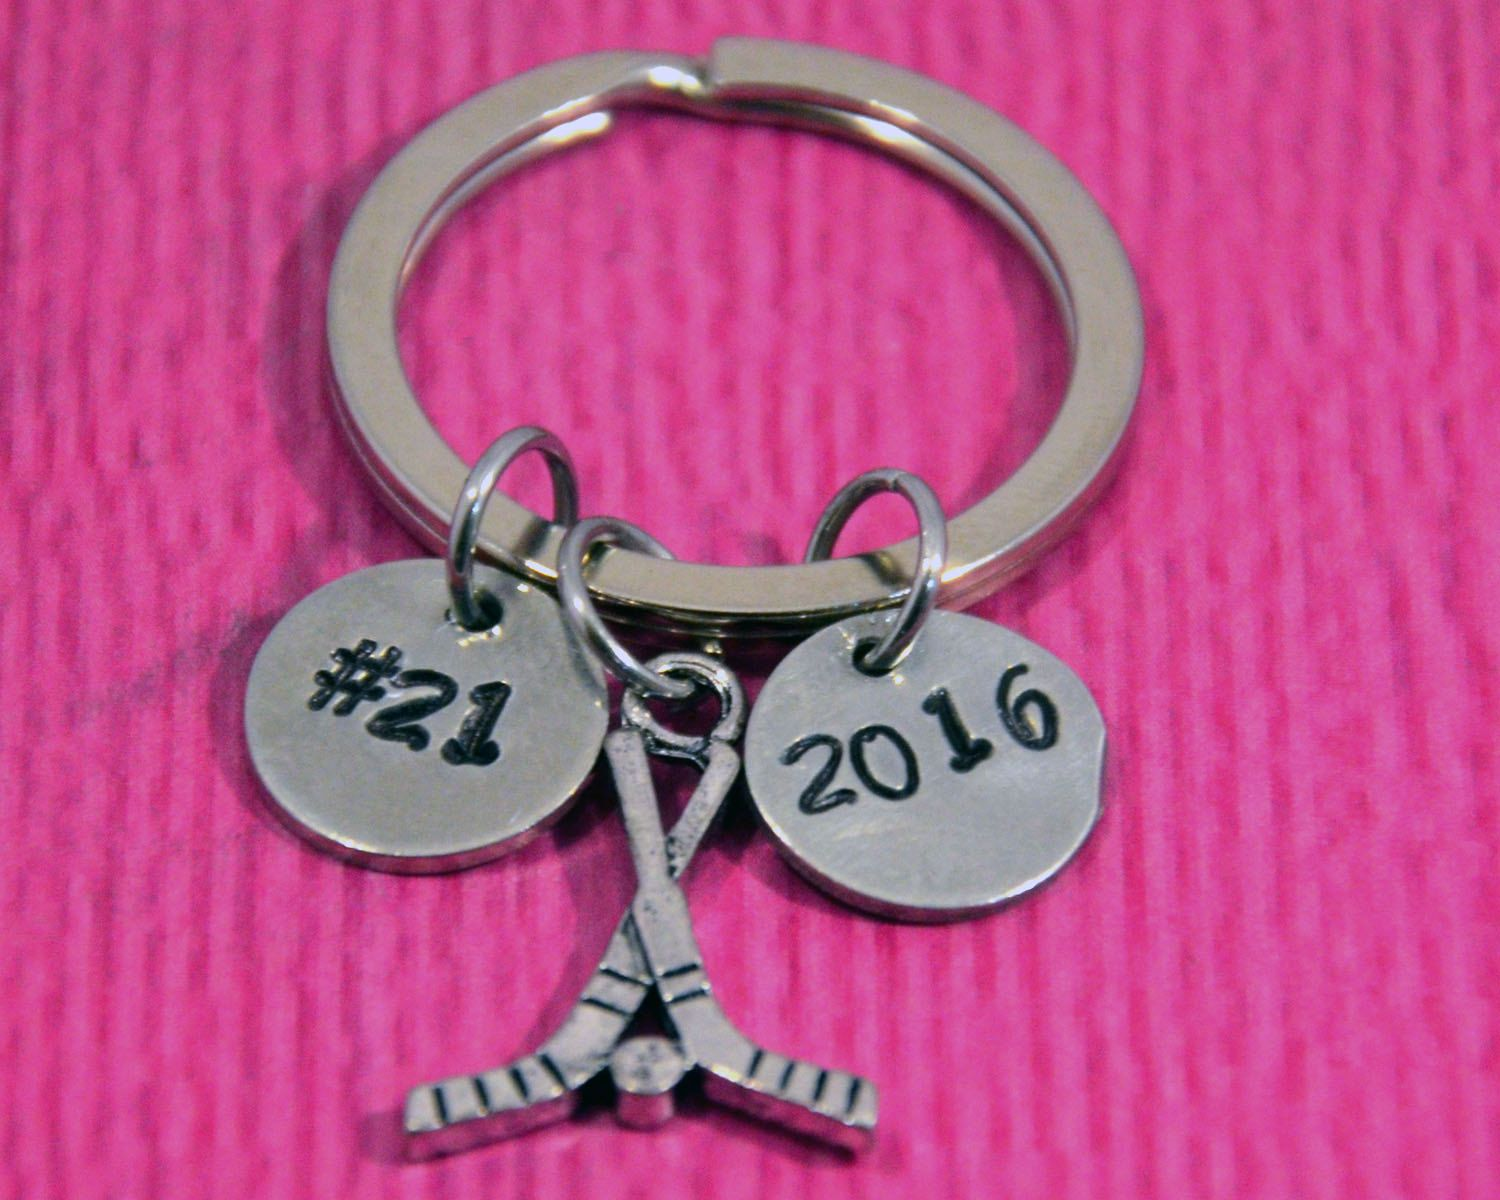 Mothers Day Gift /'No 1 Mum/' Silver with Pink Metal Keyring